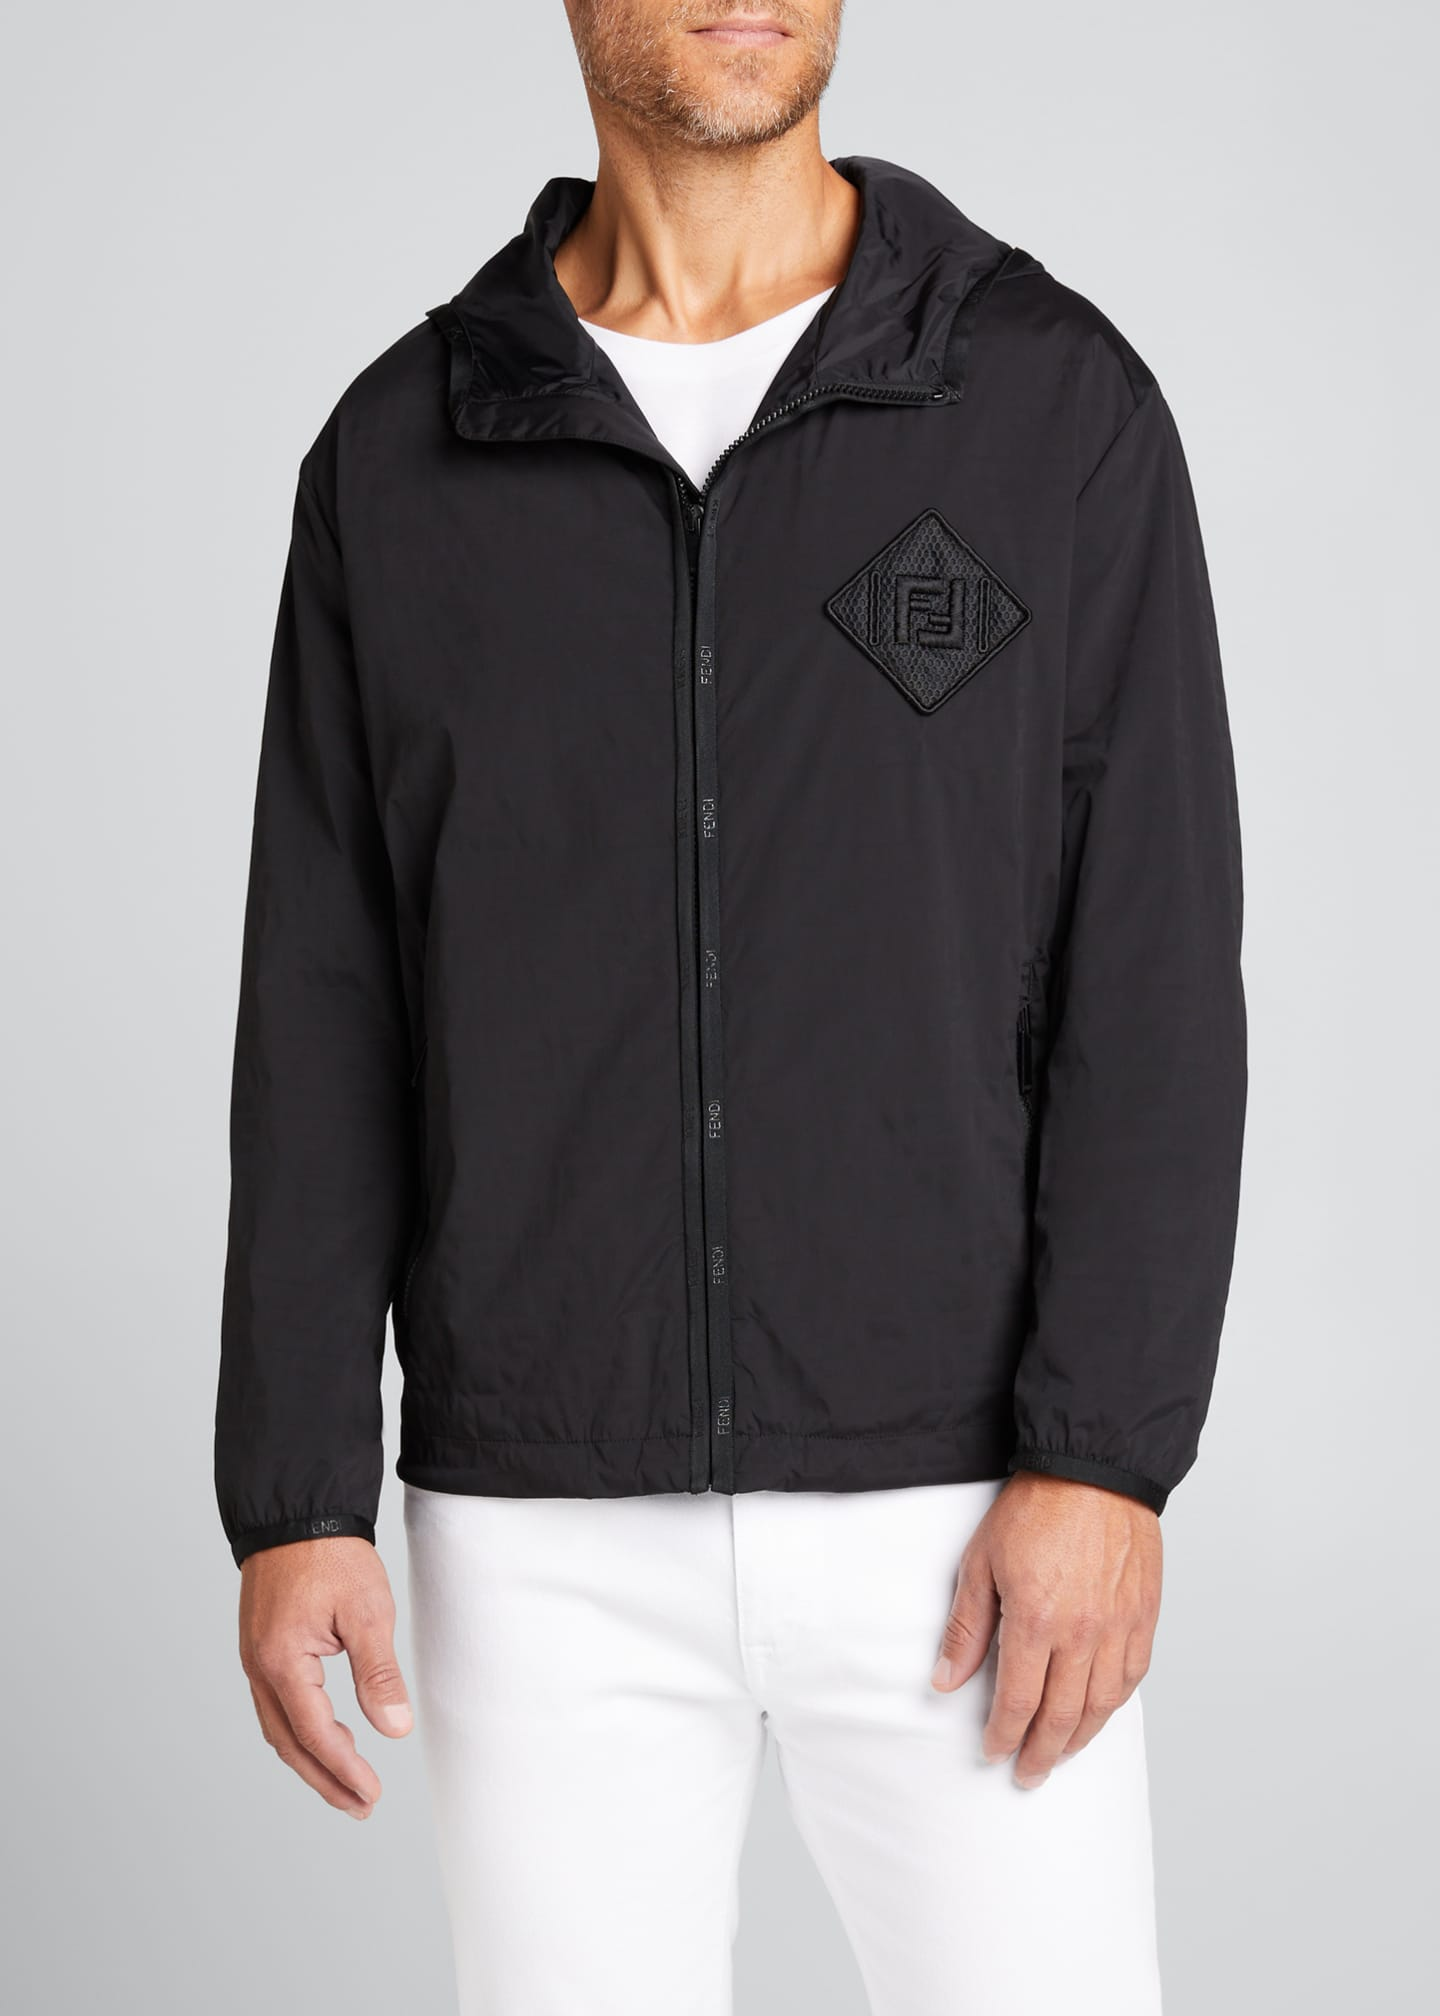 Image 3 of 4: Men's FF Water Reveal Wind-Resistant Jacket